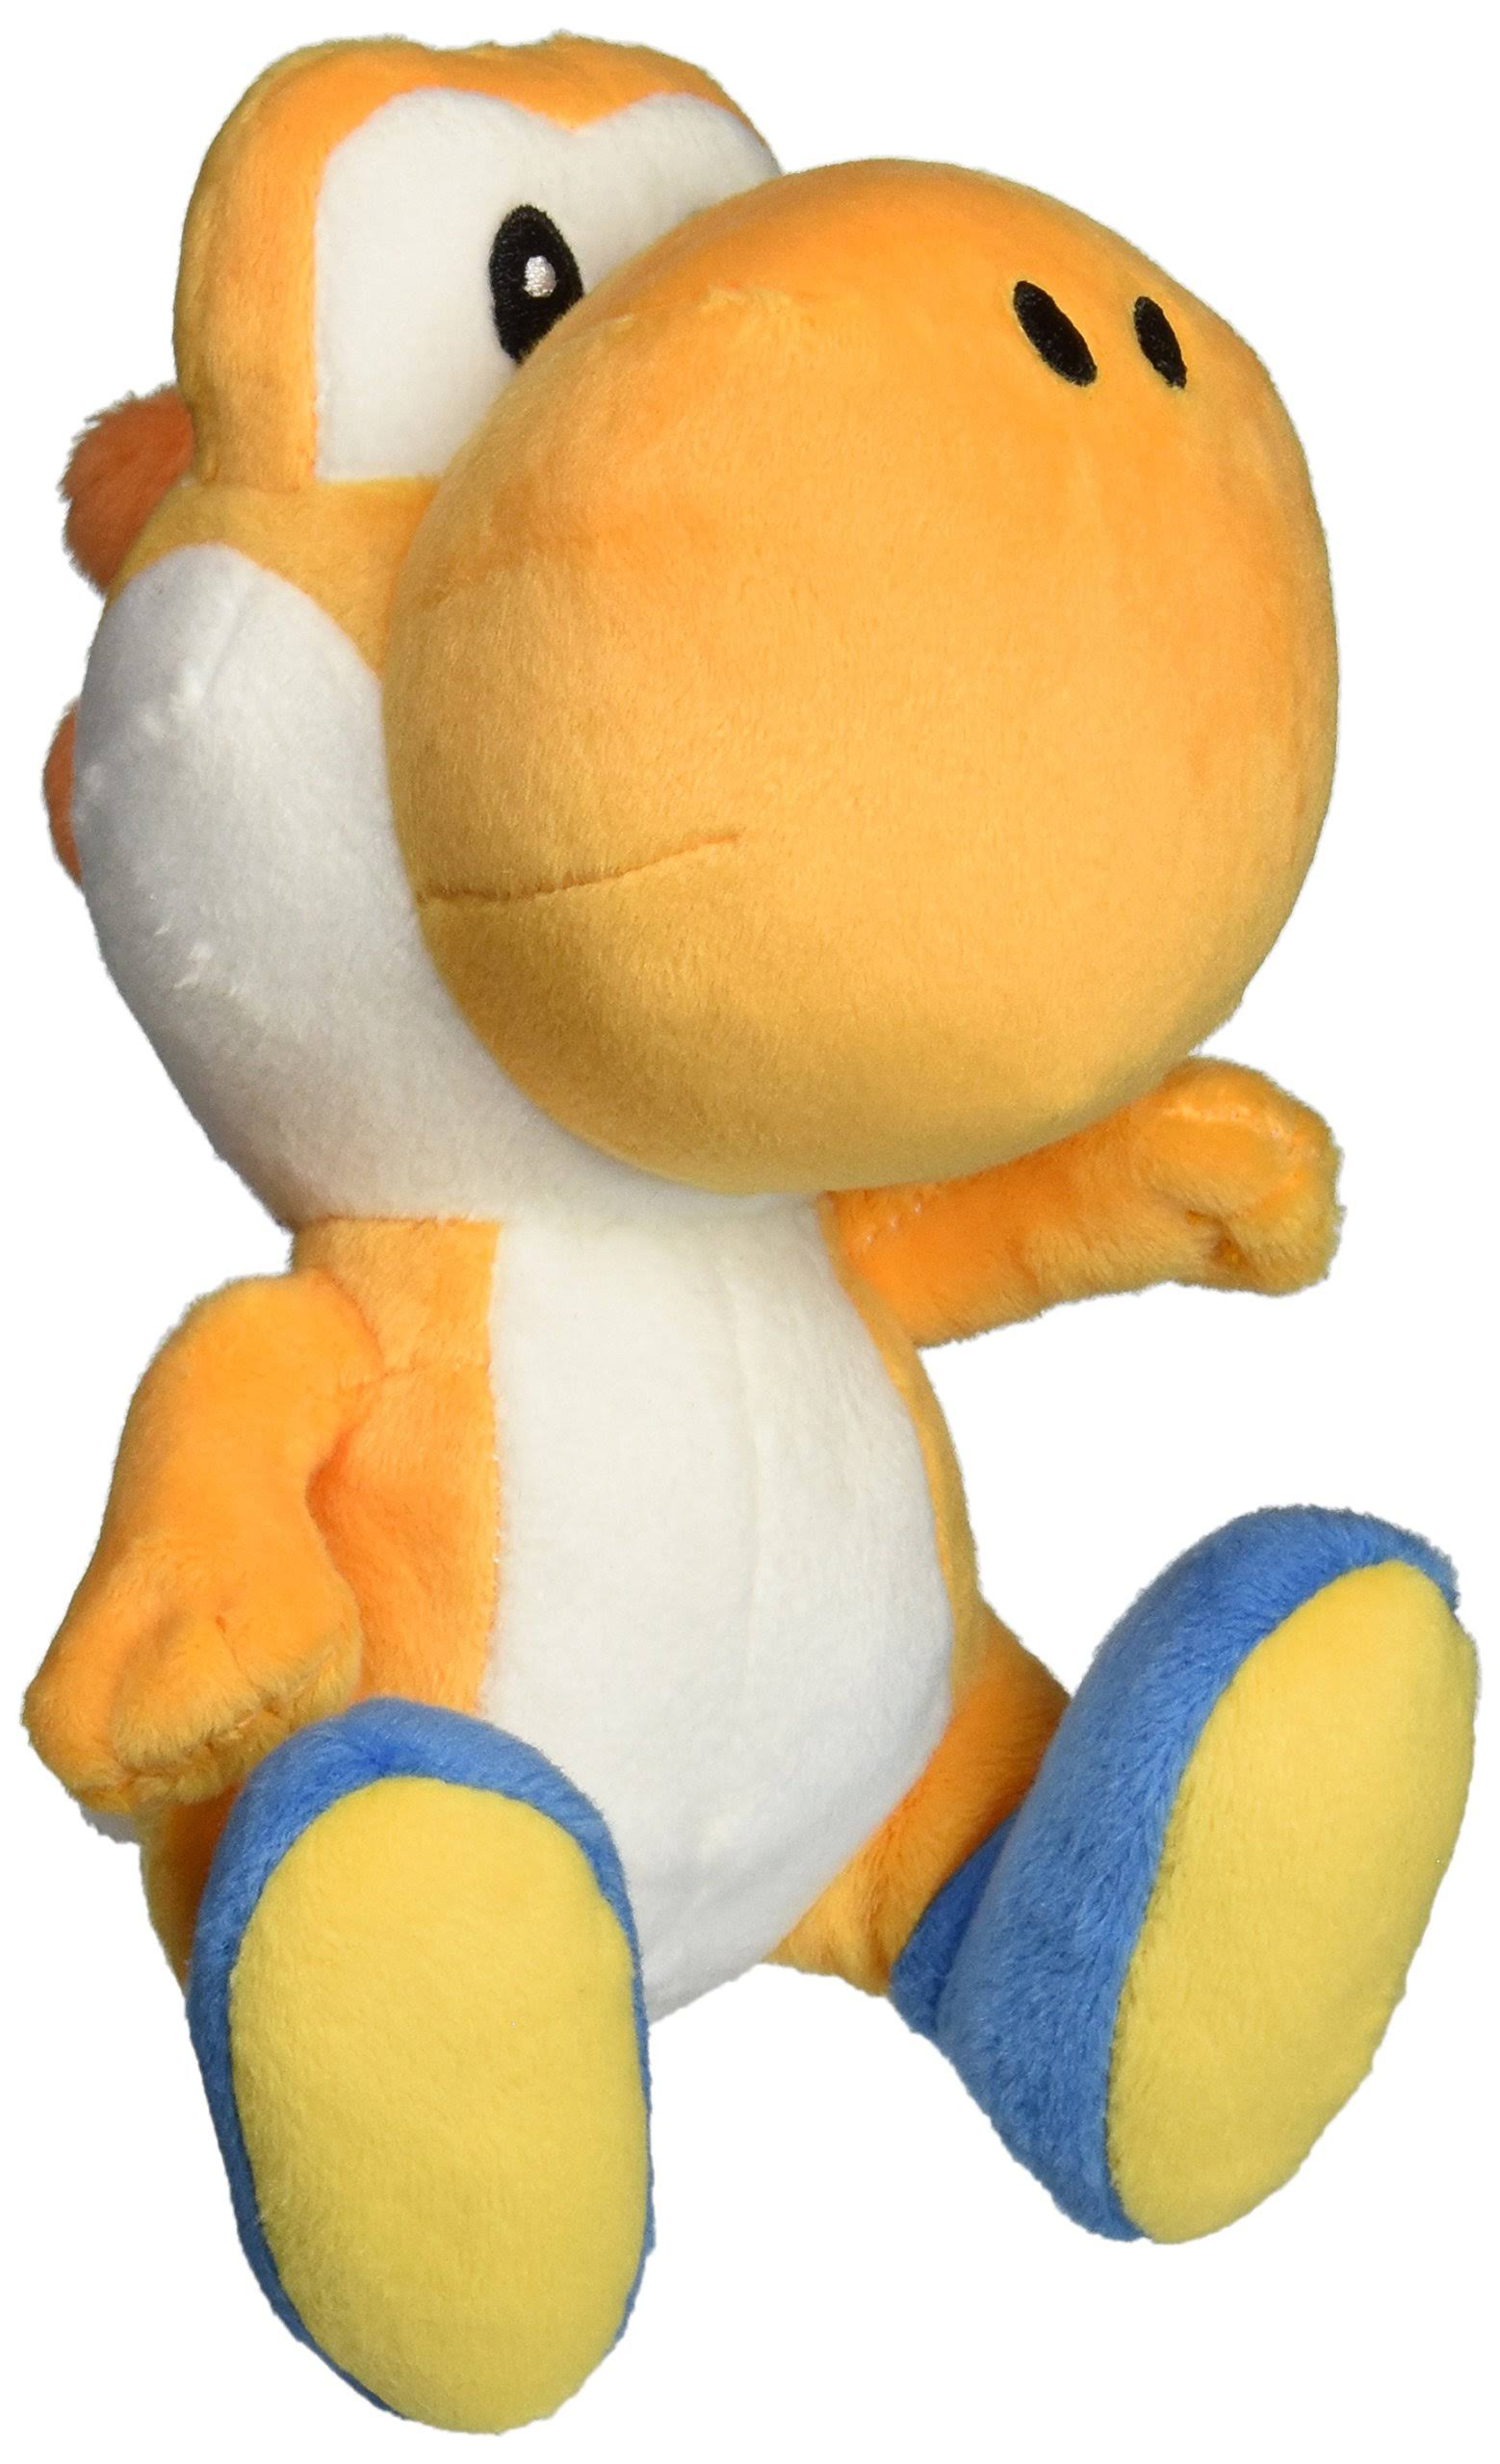 Little Buddy Super Mario Bros. Plush Toy - Yoshi, Orange, 6""